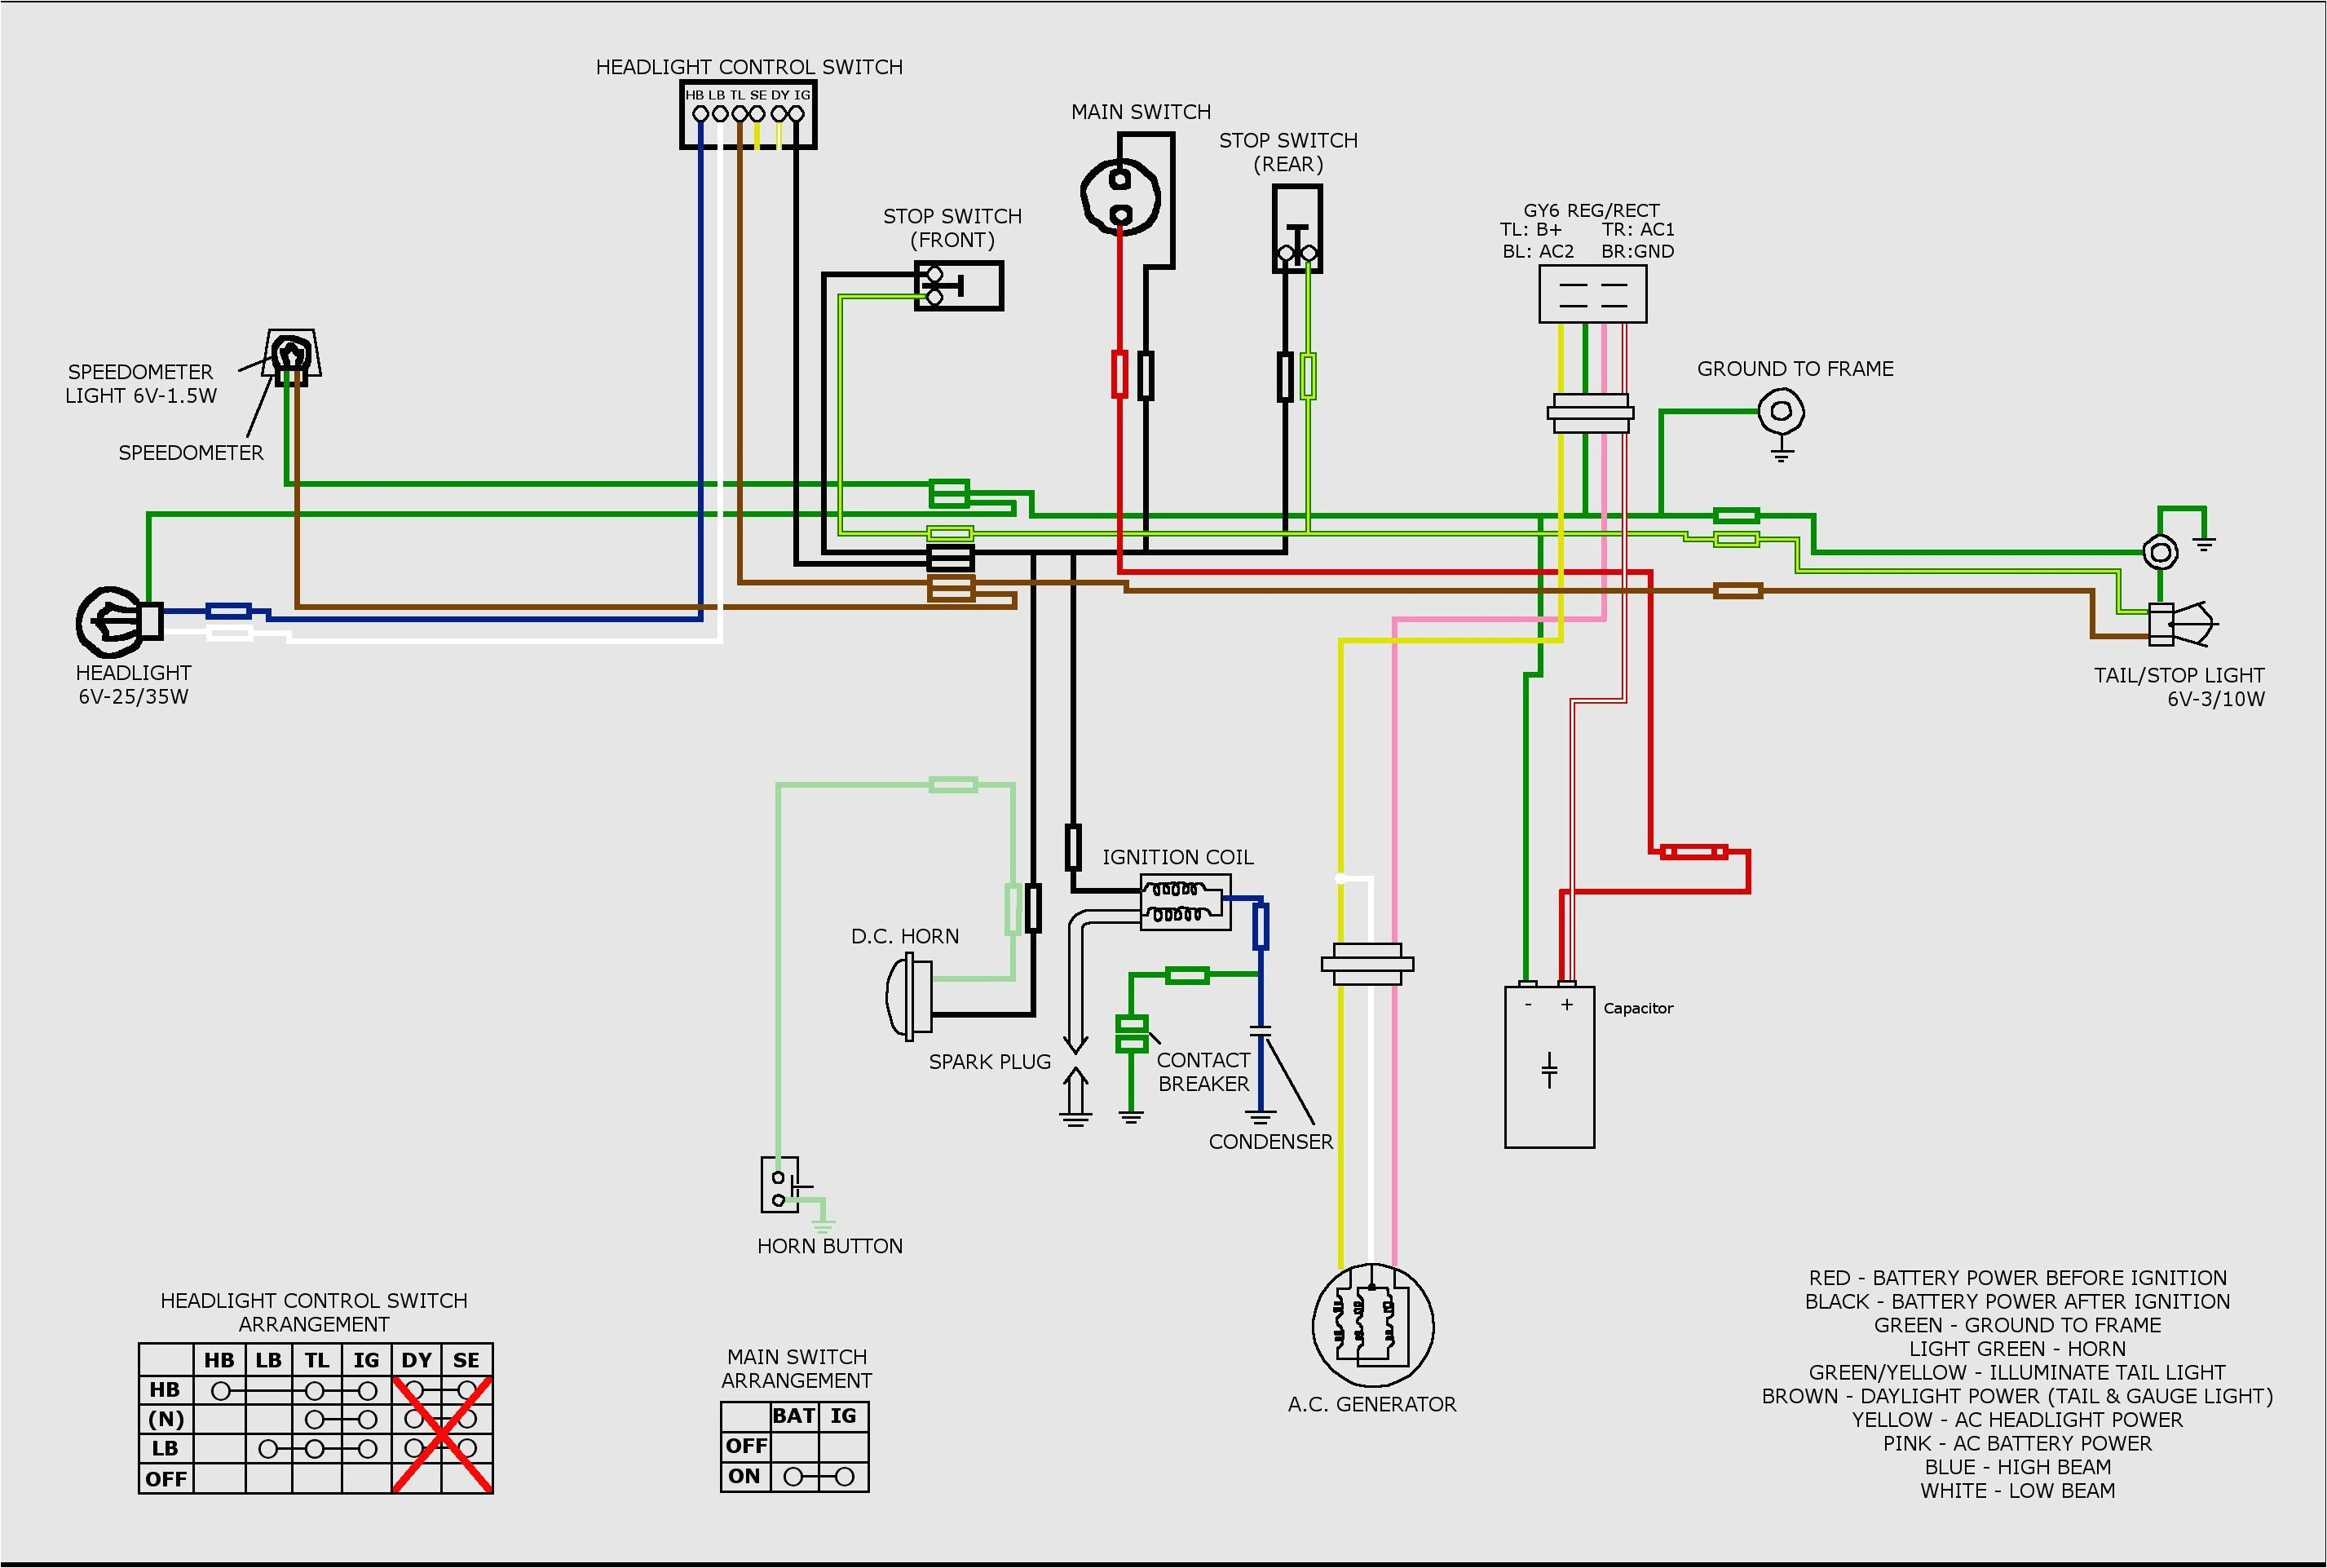 tao tao 50 scooter cdi wiring diagram my wiring diagram tao tao 49cc scooter cdi wiring